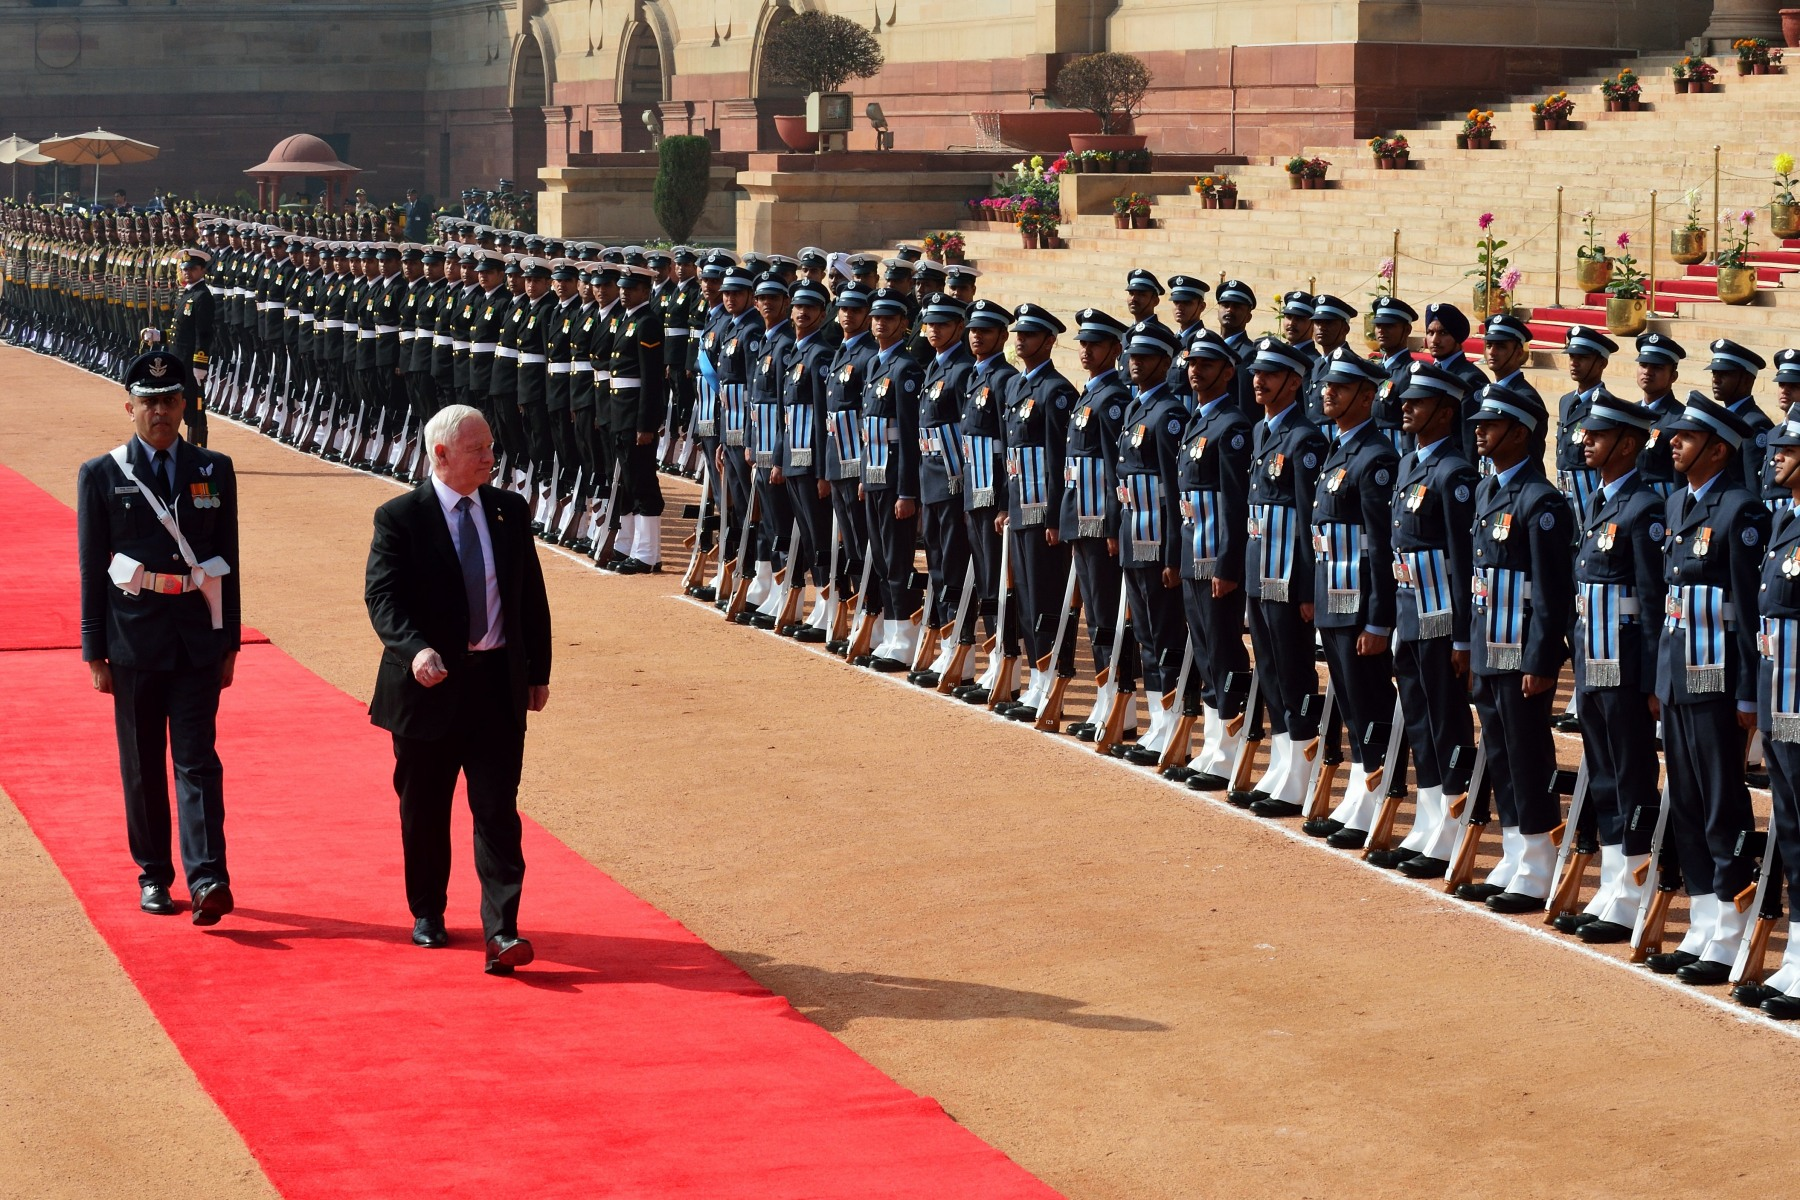 During the ceremony, the Governor General received a 21-gun salute and inspected the guard of honour.